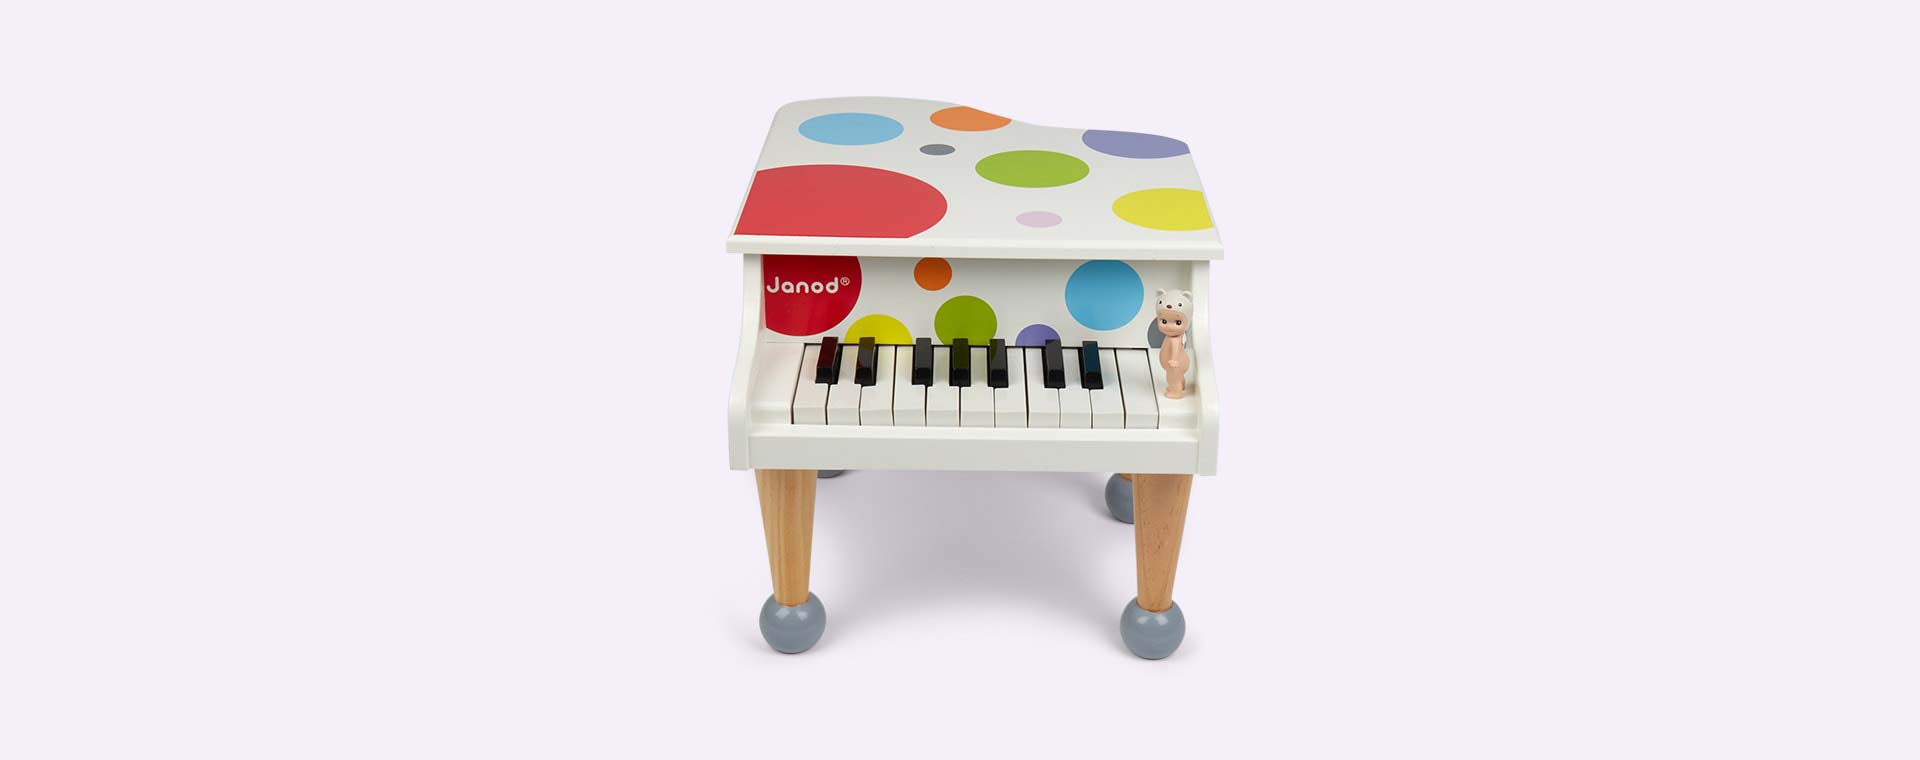 Multi Janod Confetti Grand Piano